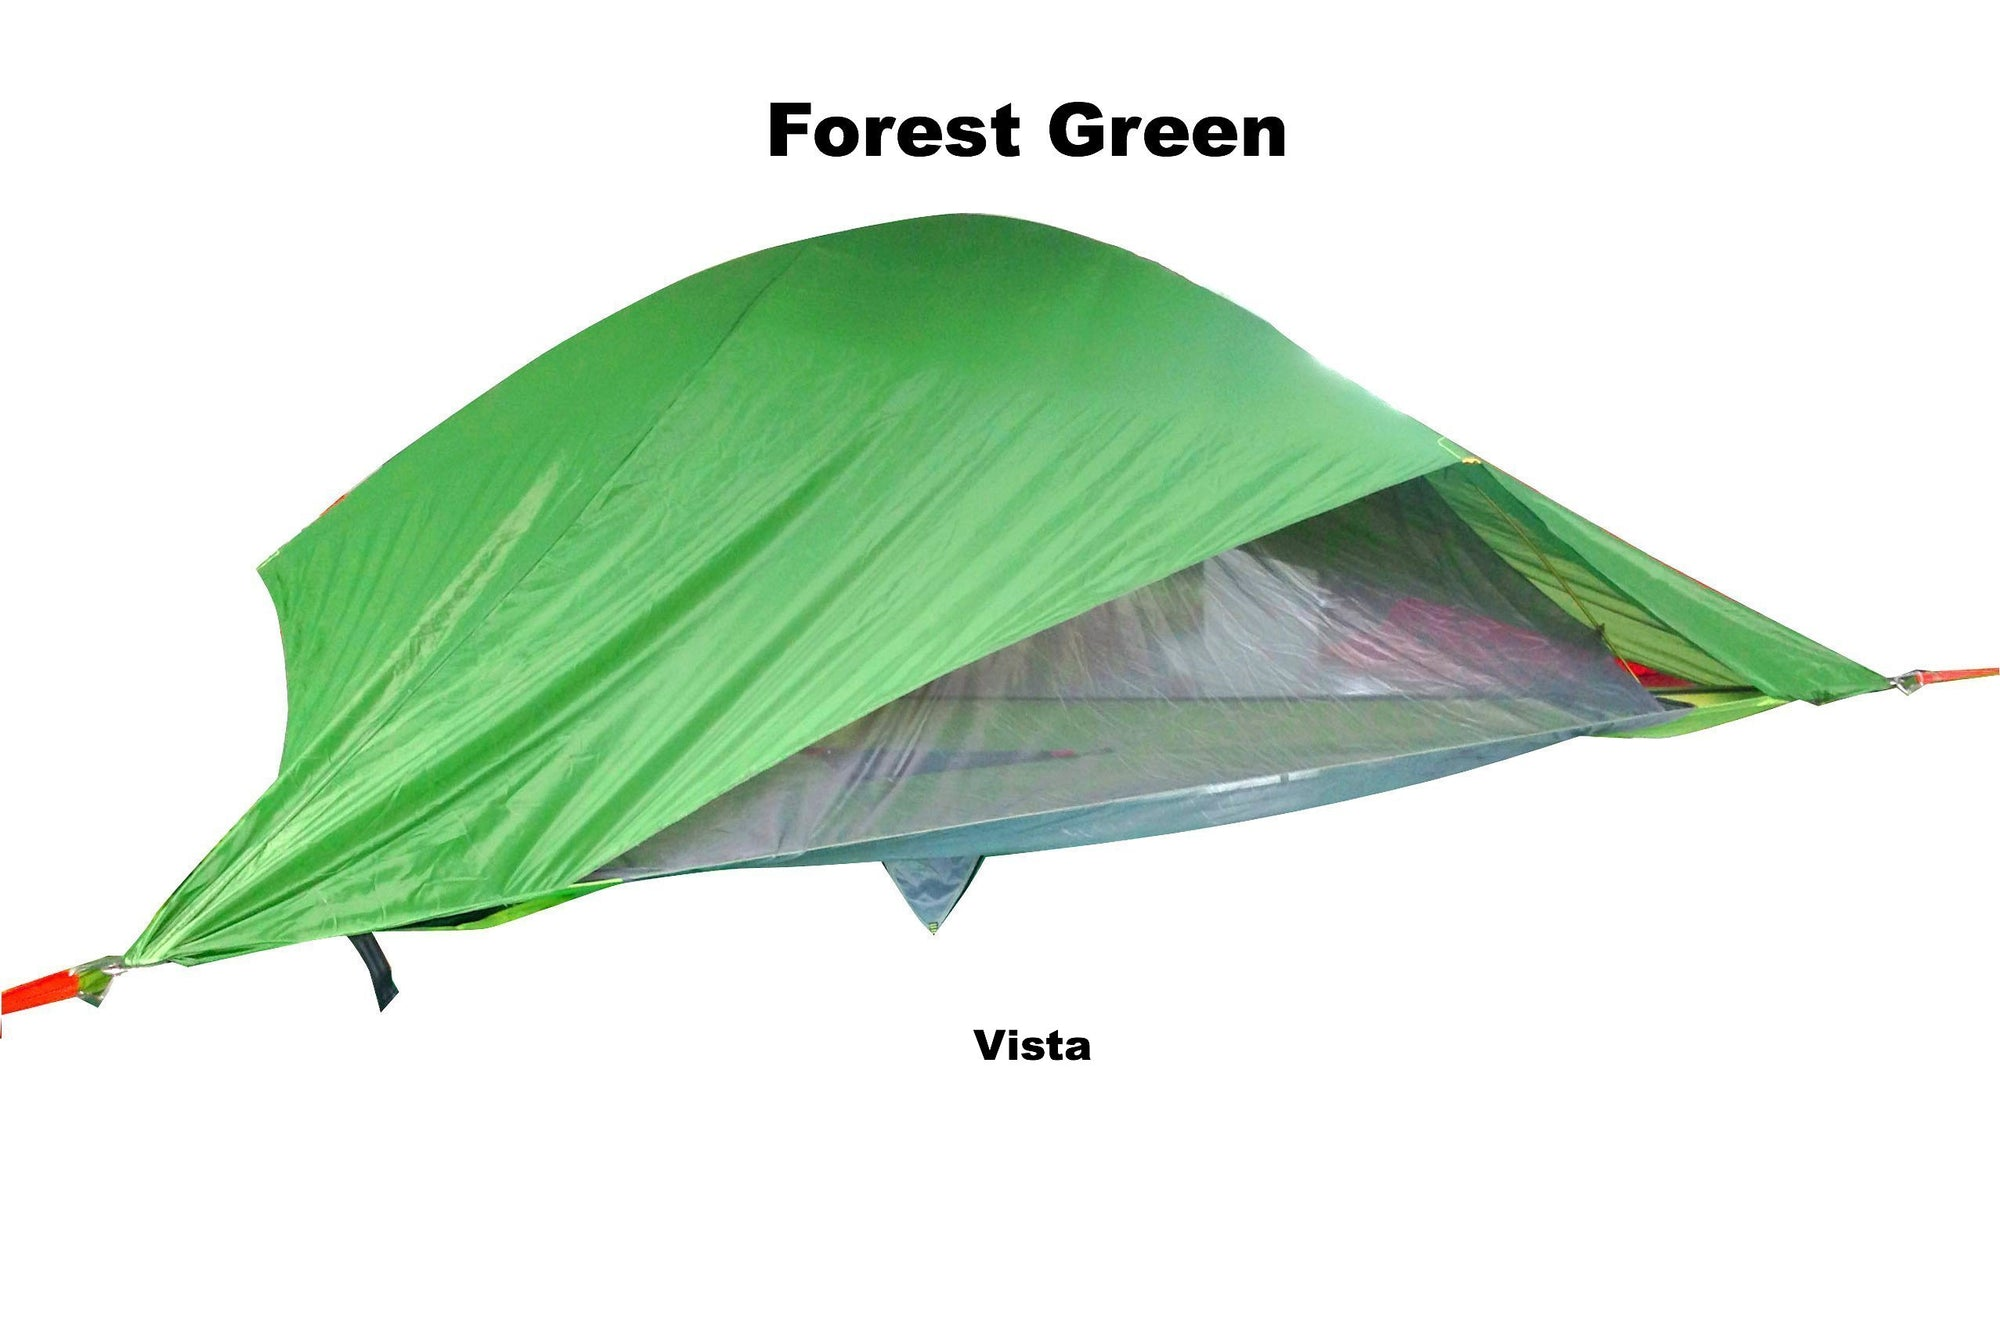 Spare Forest Green Rainfly for Vista 3-Person Modular Tree Tent